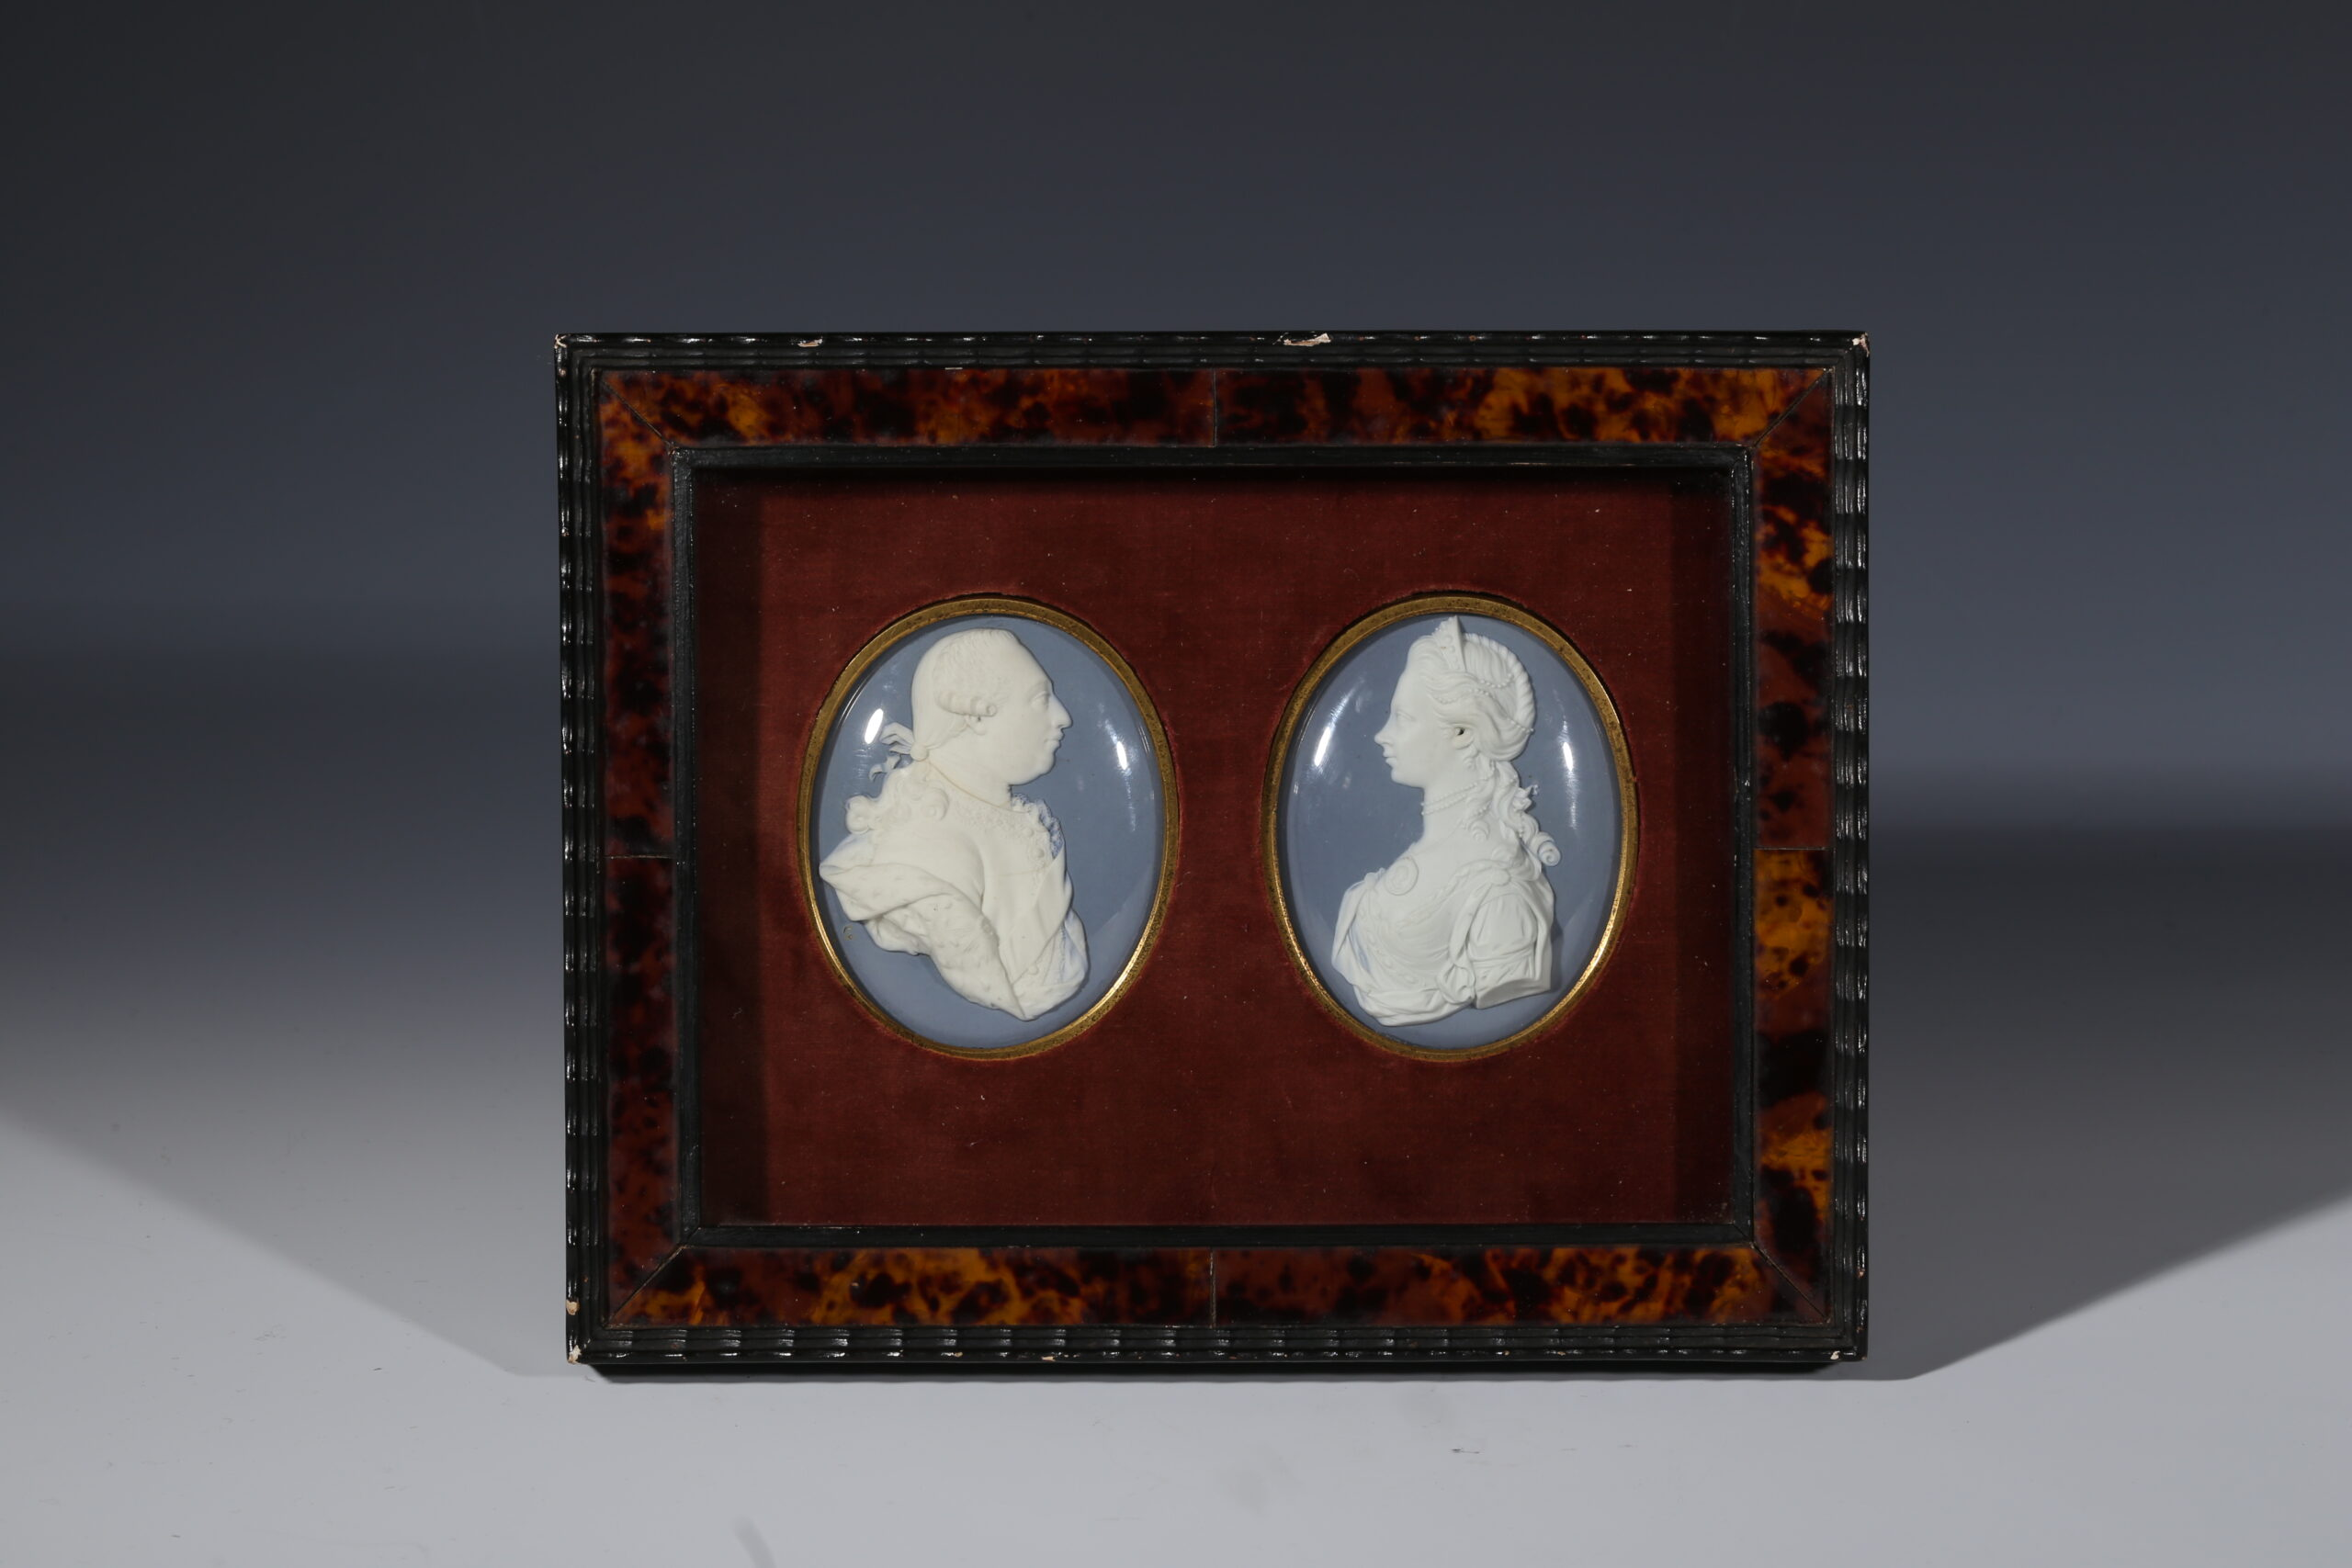 A pair of Wedgwood and Bentley medallions of George III and Queen Charlotte